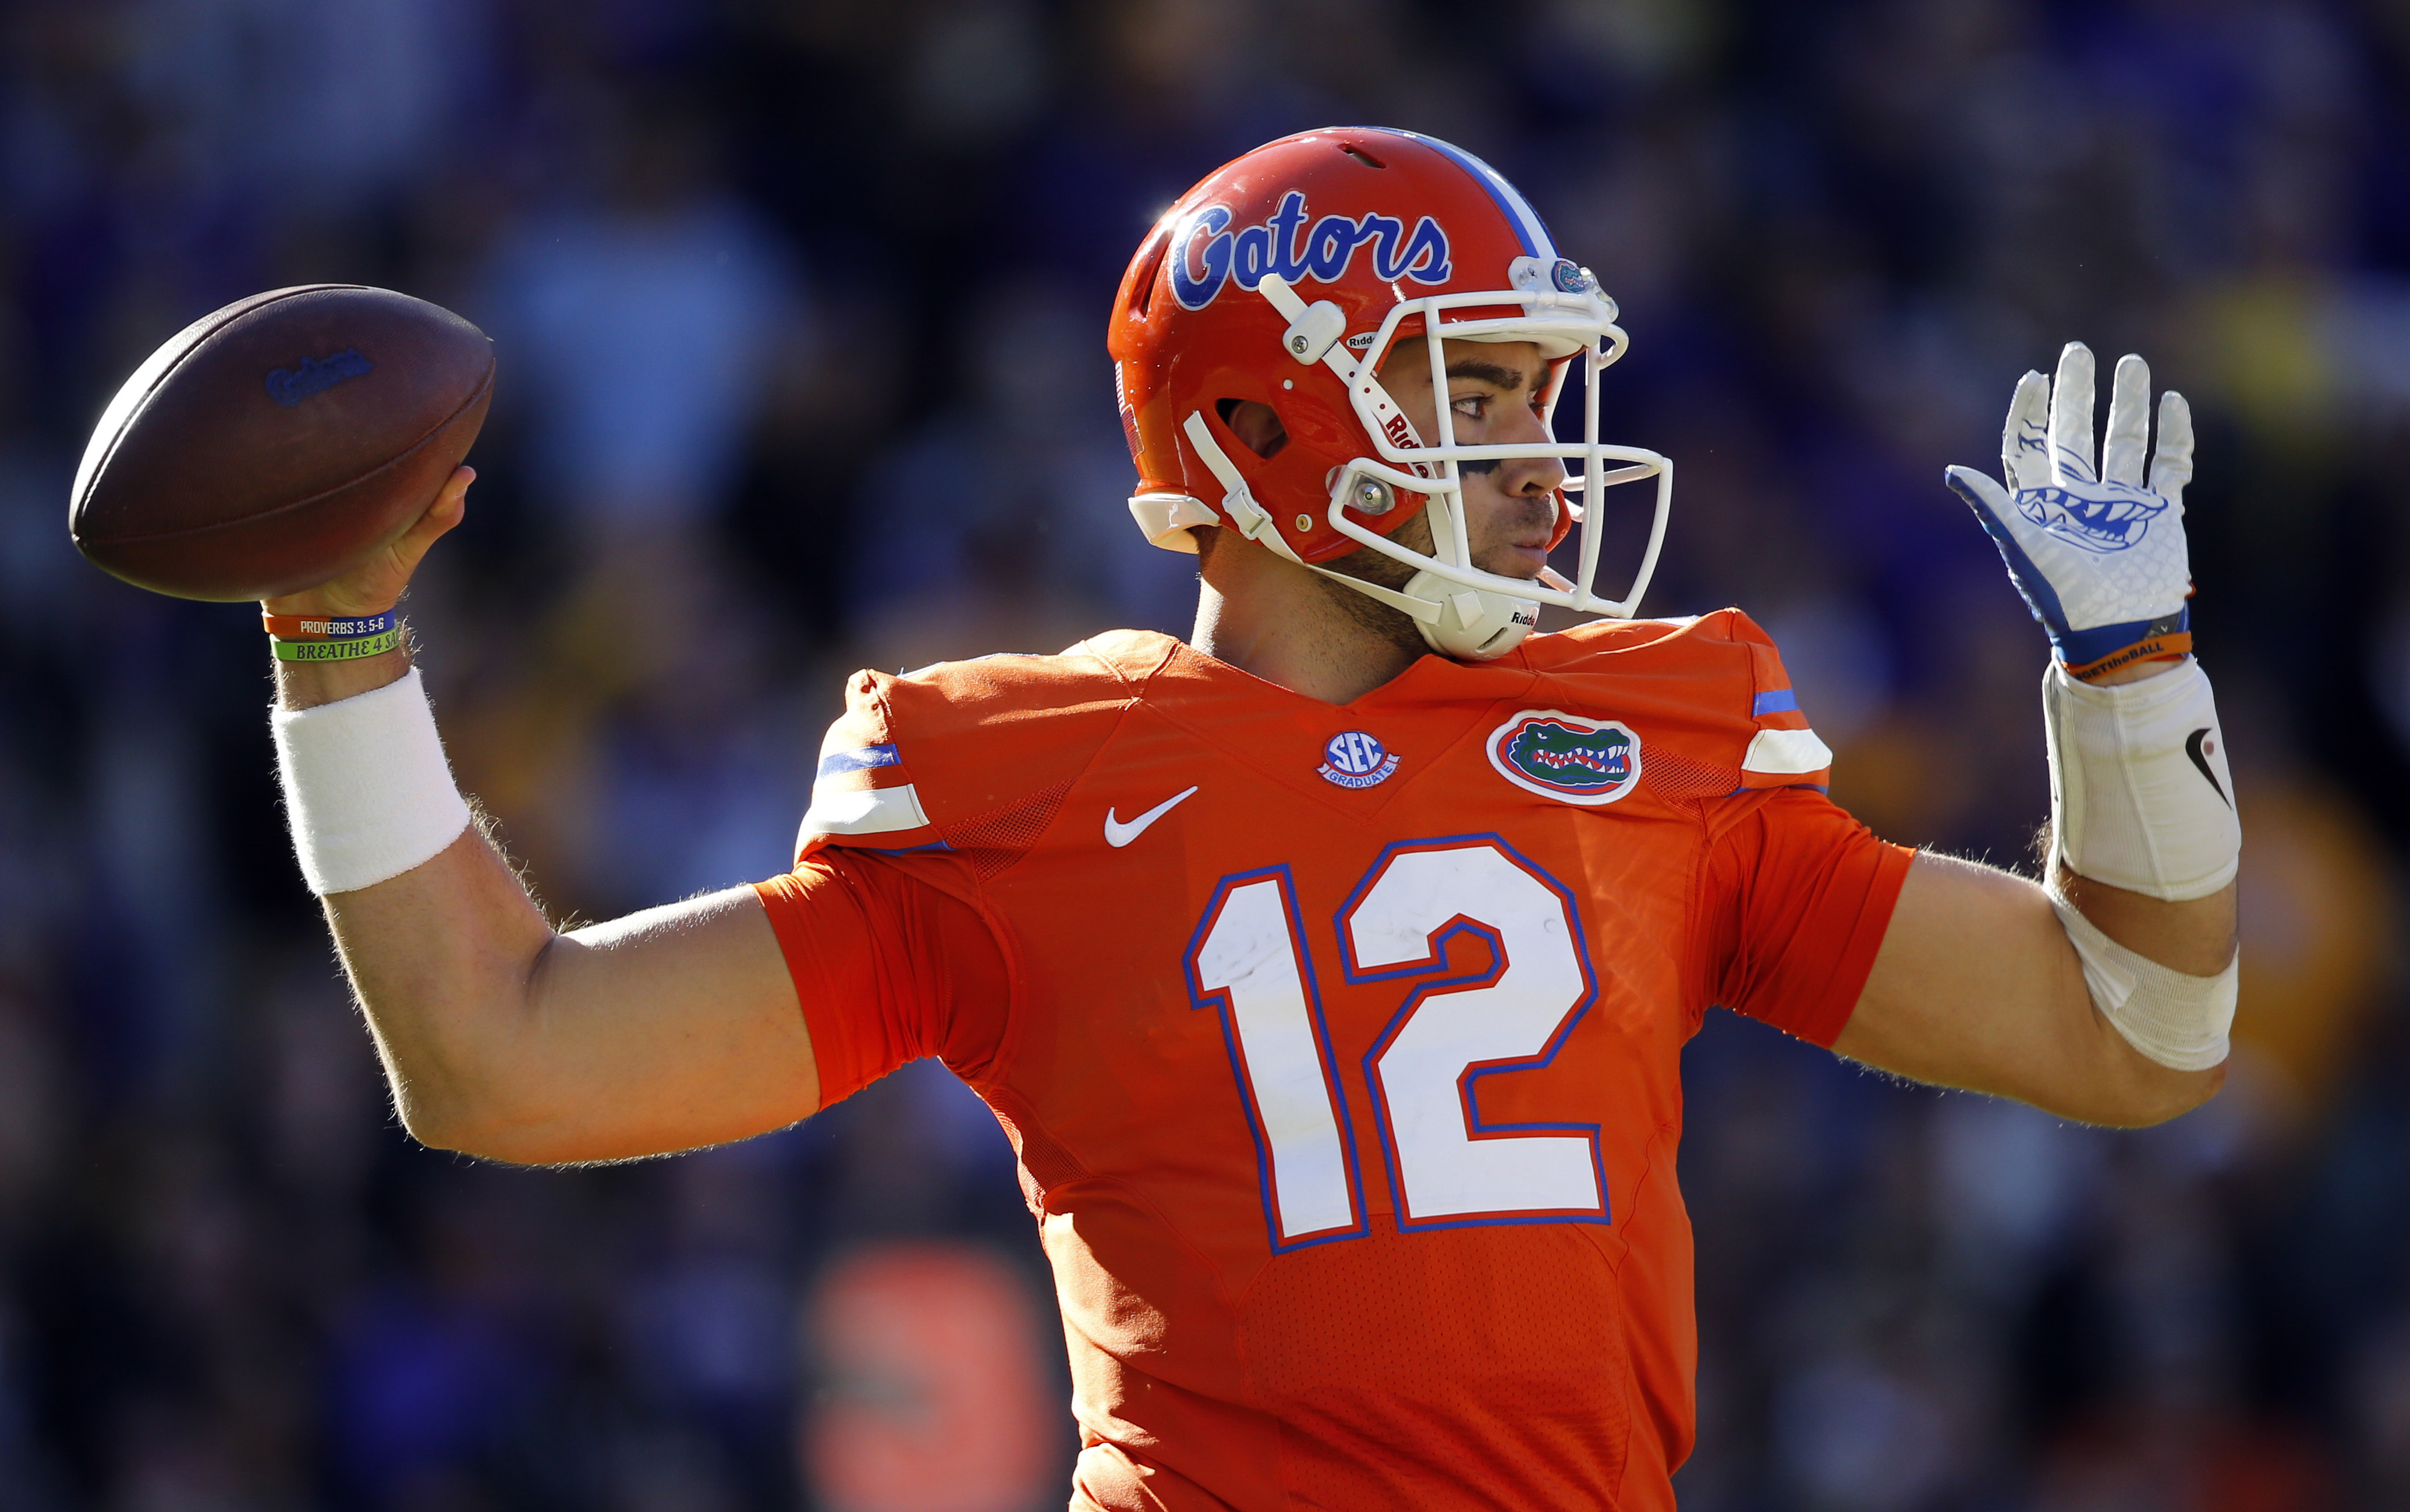 Florida quarterback Austin Appleby (12) throws a pas in the second half an NCAA college football game against LSU in Baton Rouge, La., Saturday, Nov. 19, 2016. Florida won 16-10. (AP Photo/Gerald Herbert)